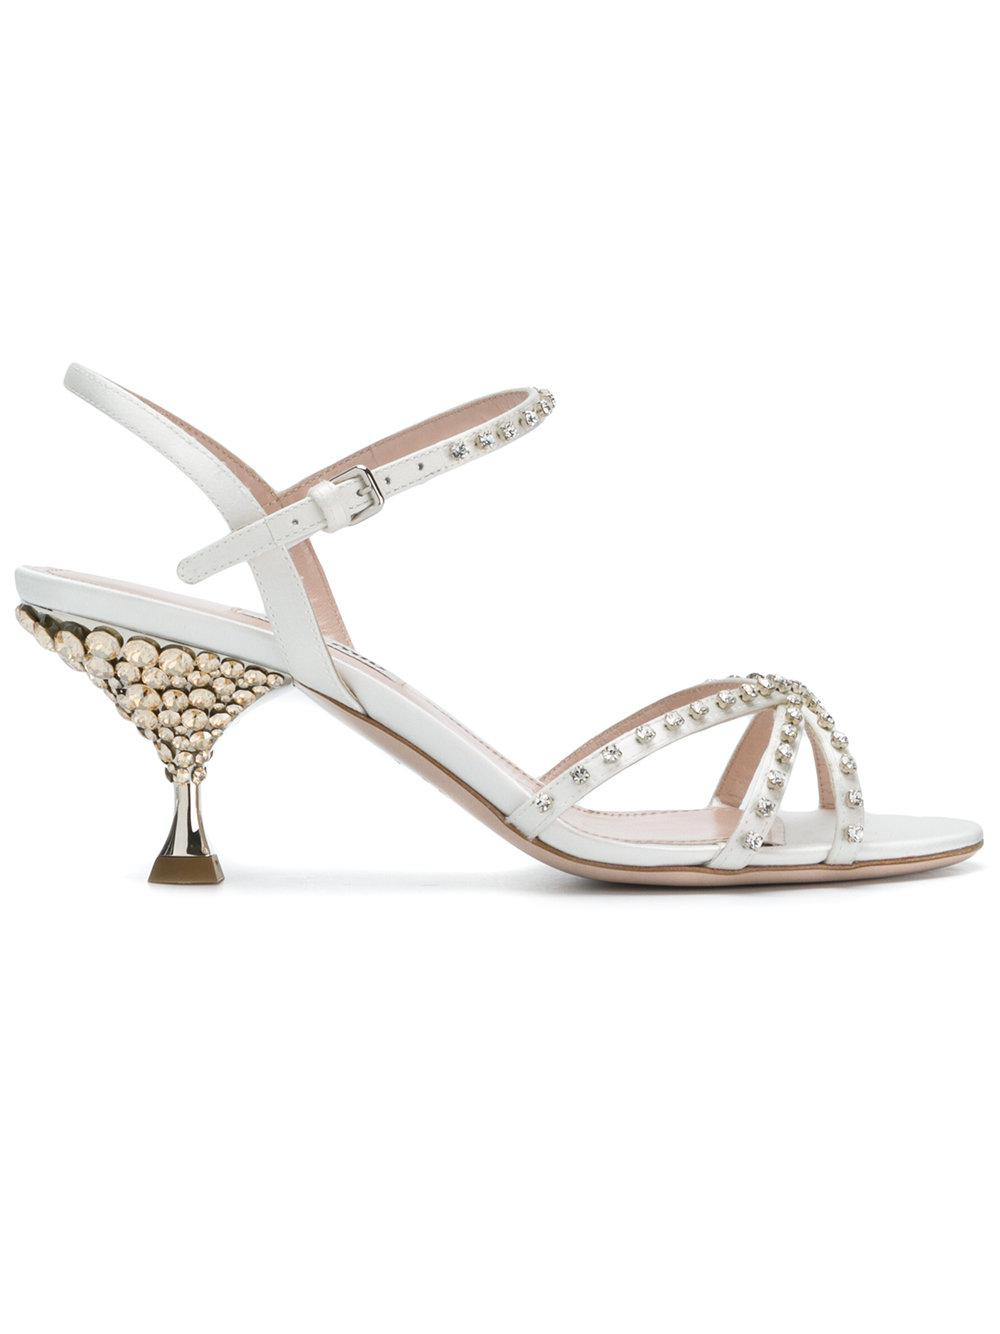 4f8a56c1517 Lyst - Miu Miu Crystal Embellished Sandals in White